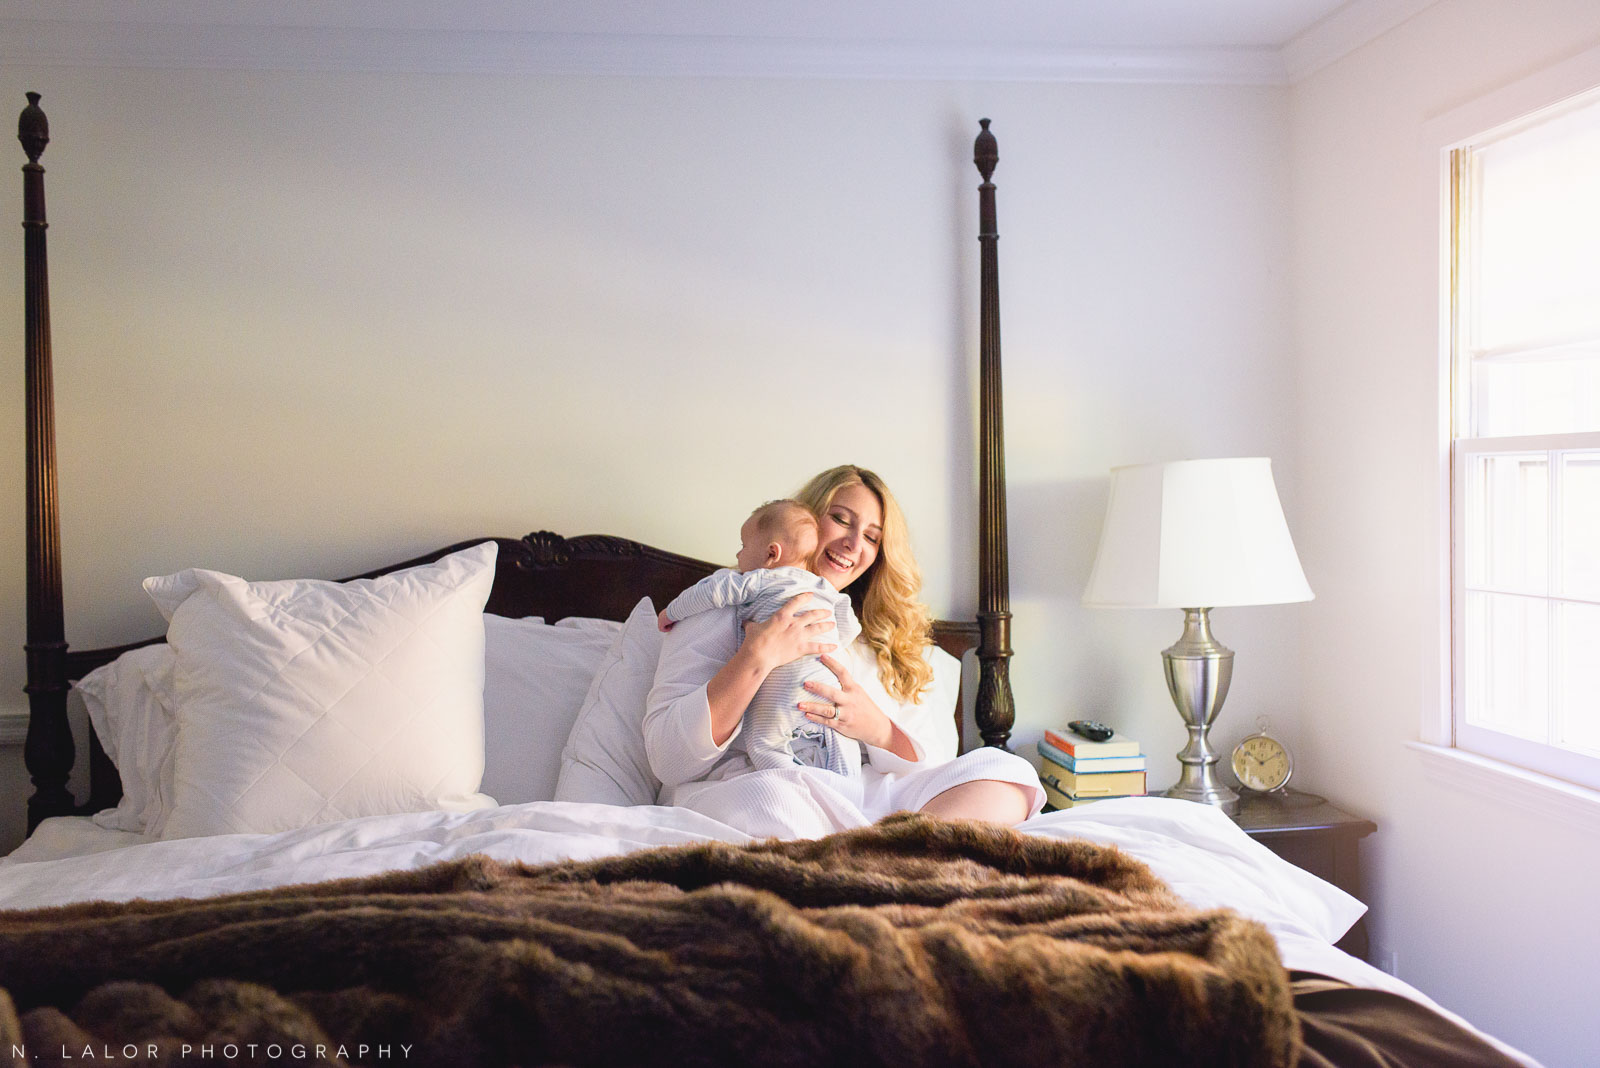 Waking up with baby. Lifestyle Mom and Baby portrait by N. Lalor Photography.